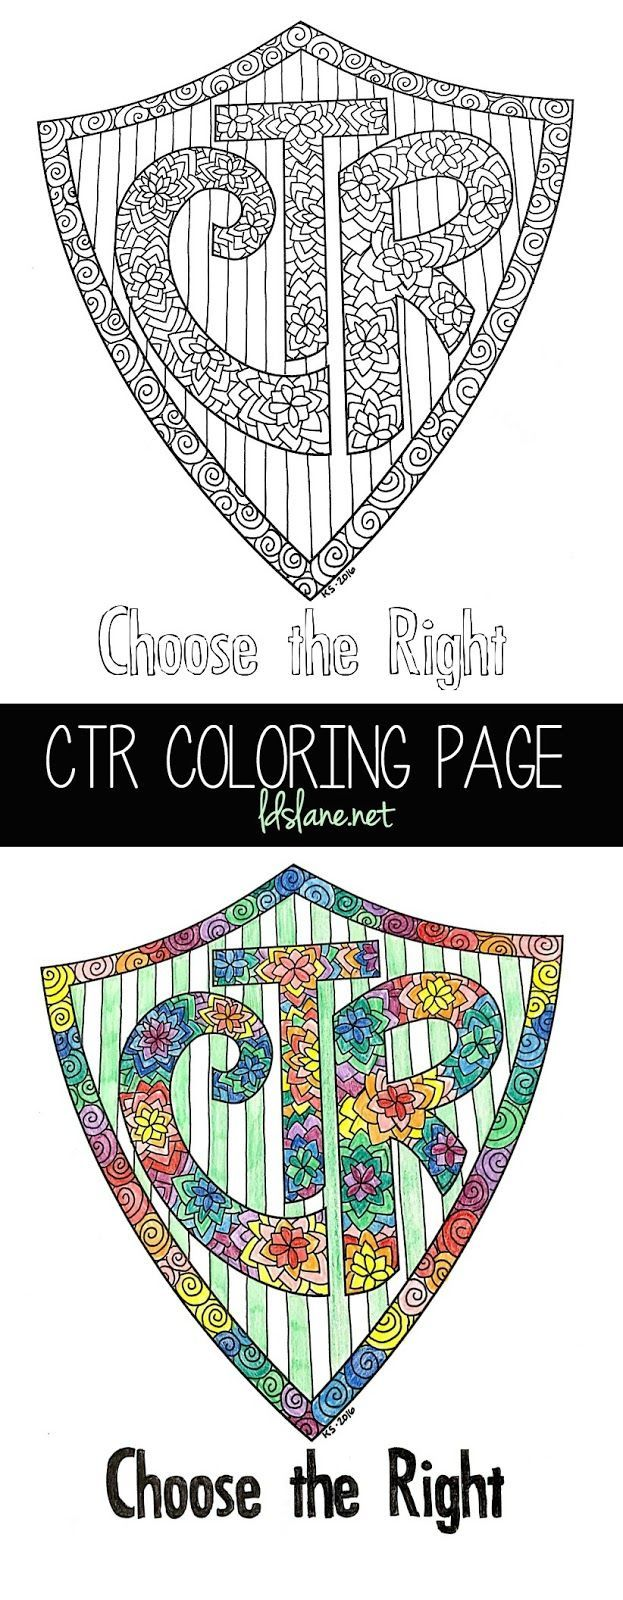 CTR Coloring Page by LDS Lane